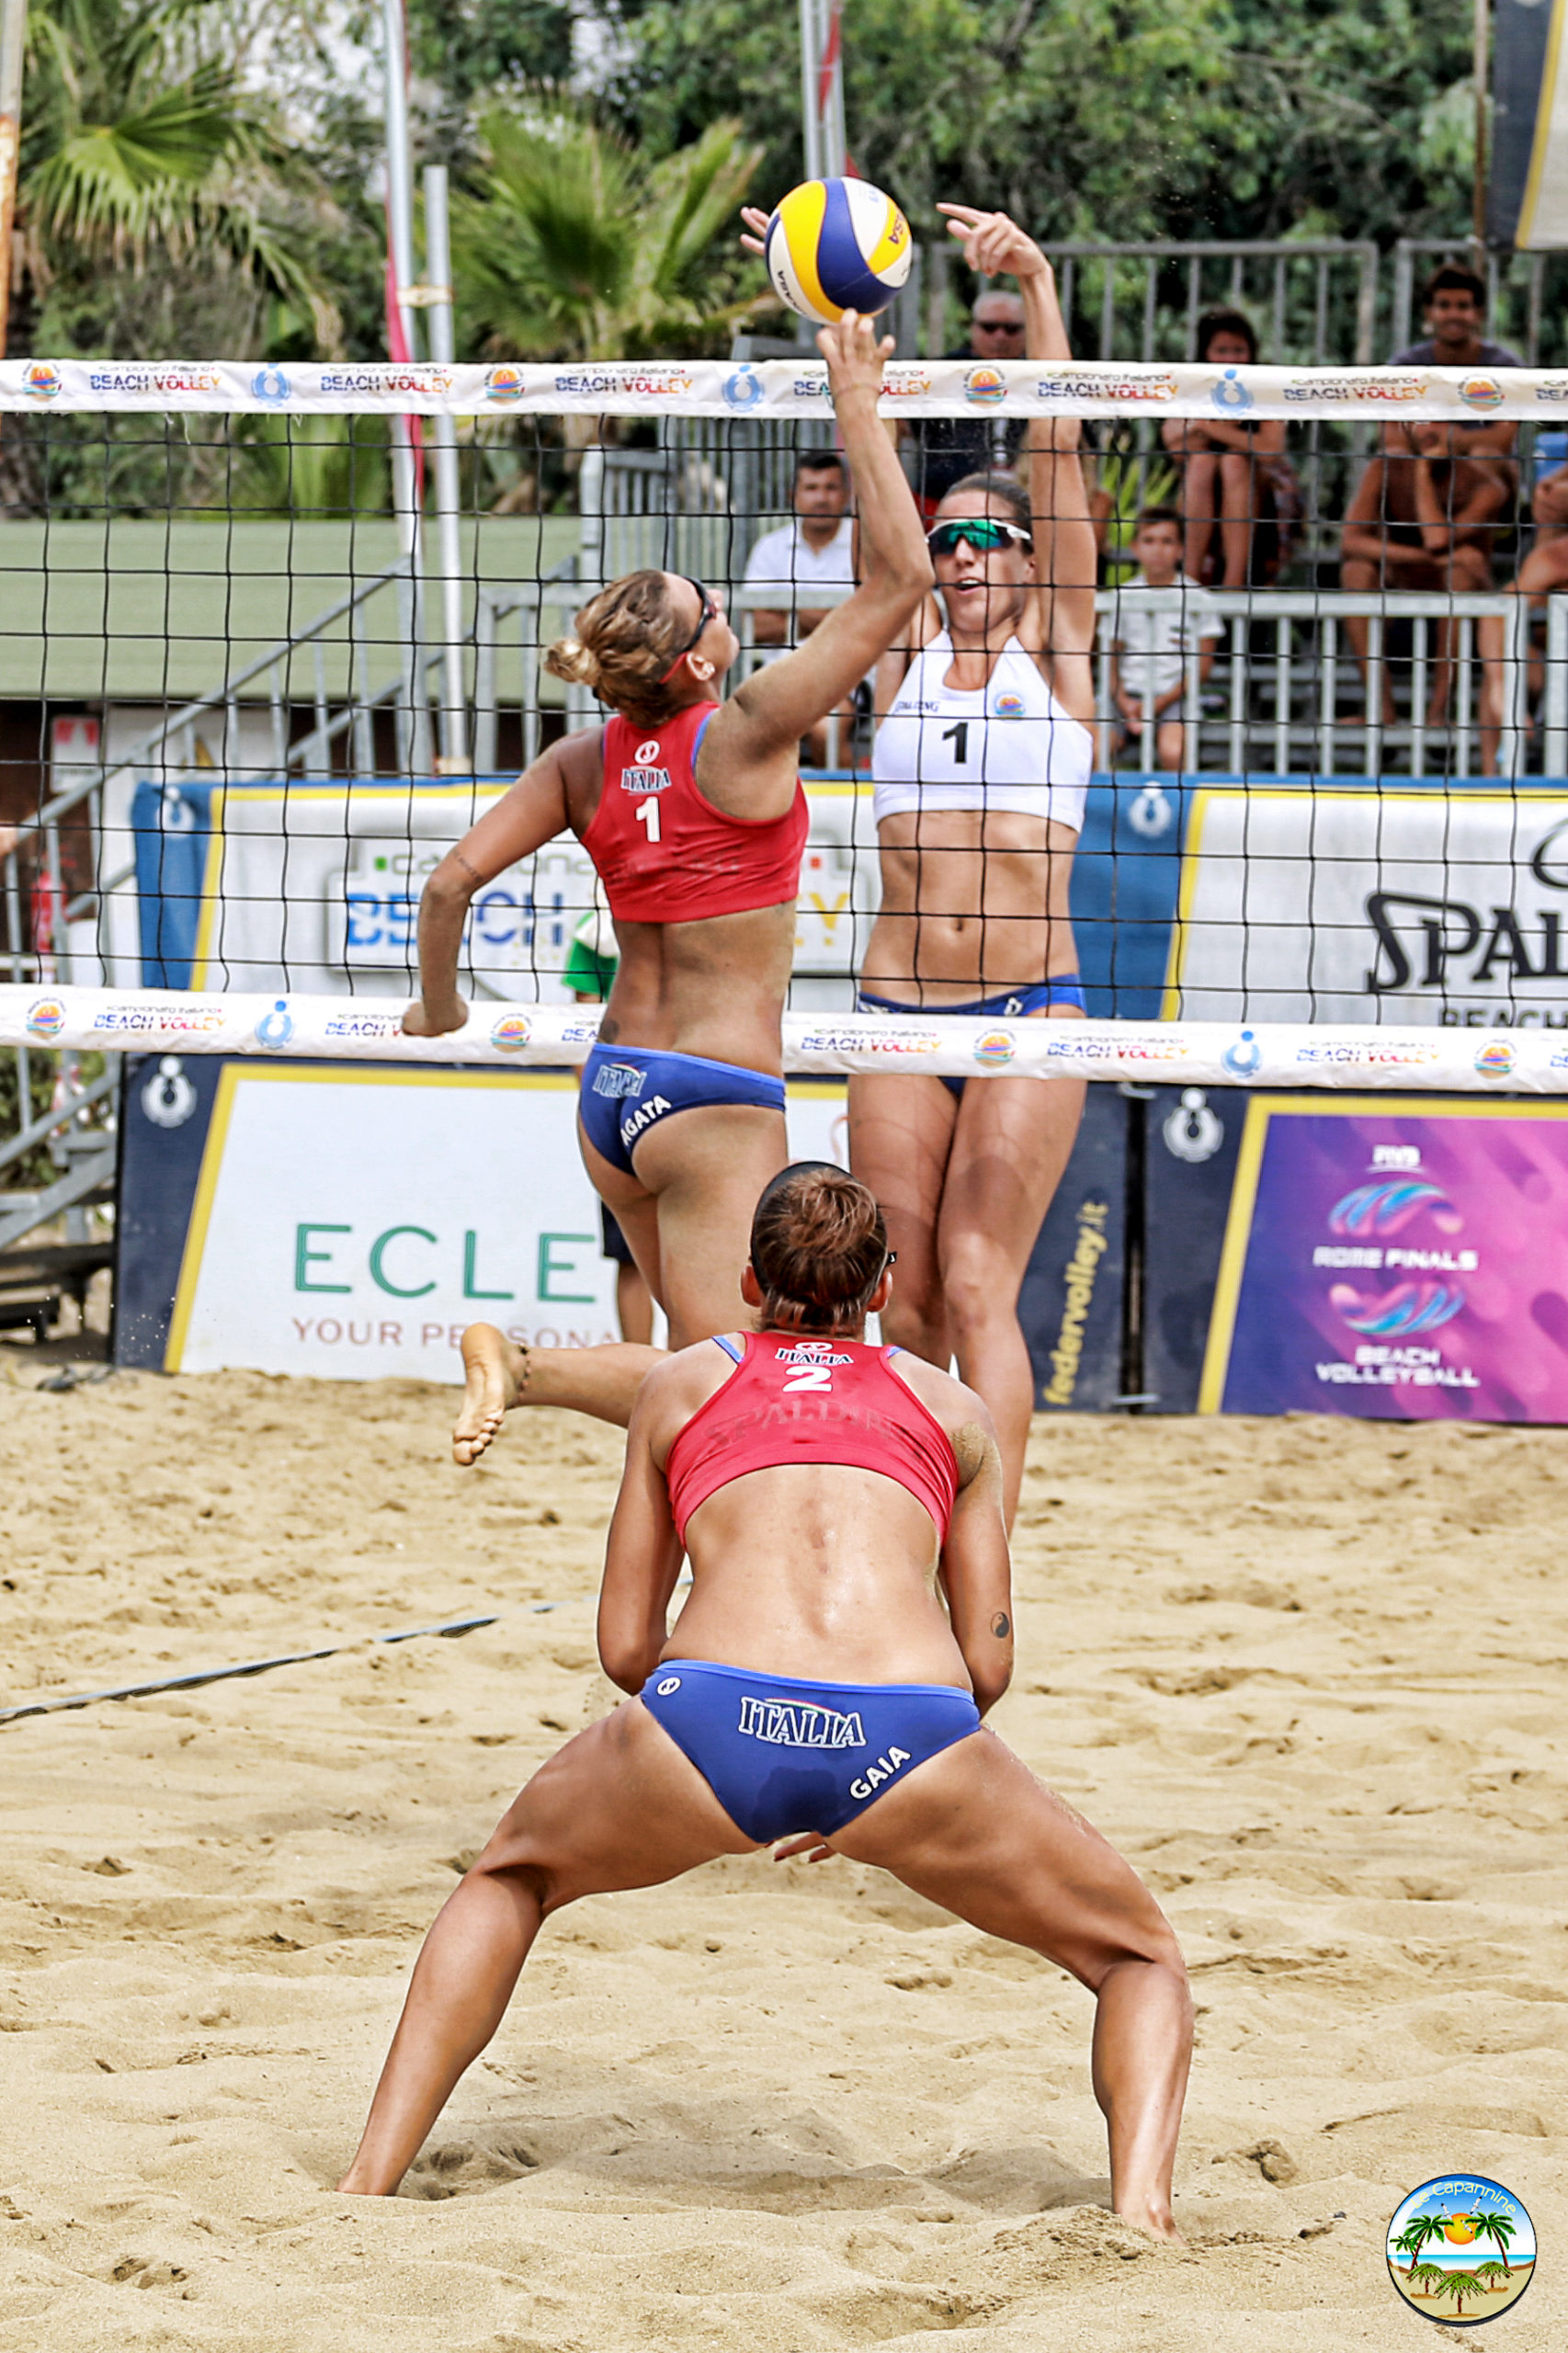 Coppa Italia di Beach Volley